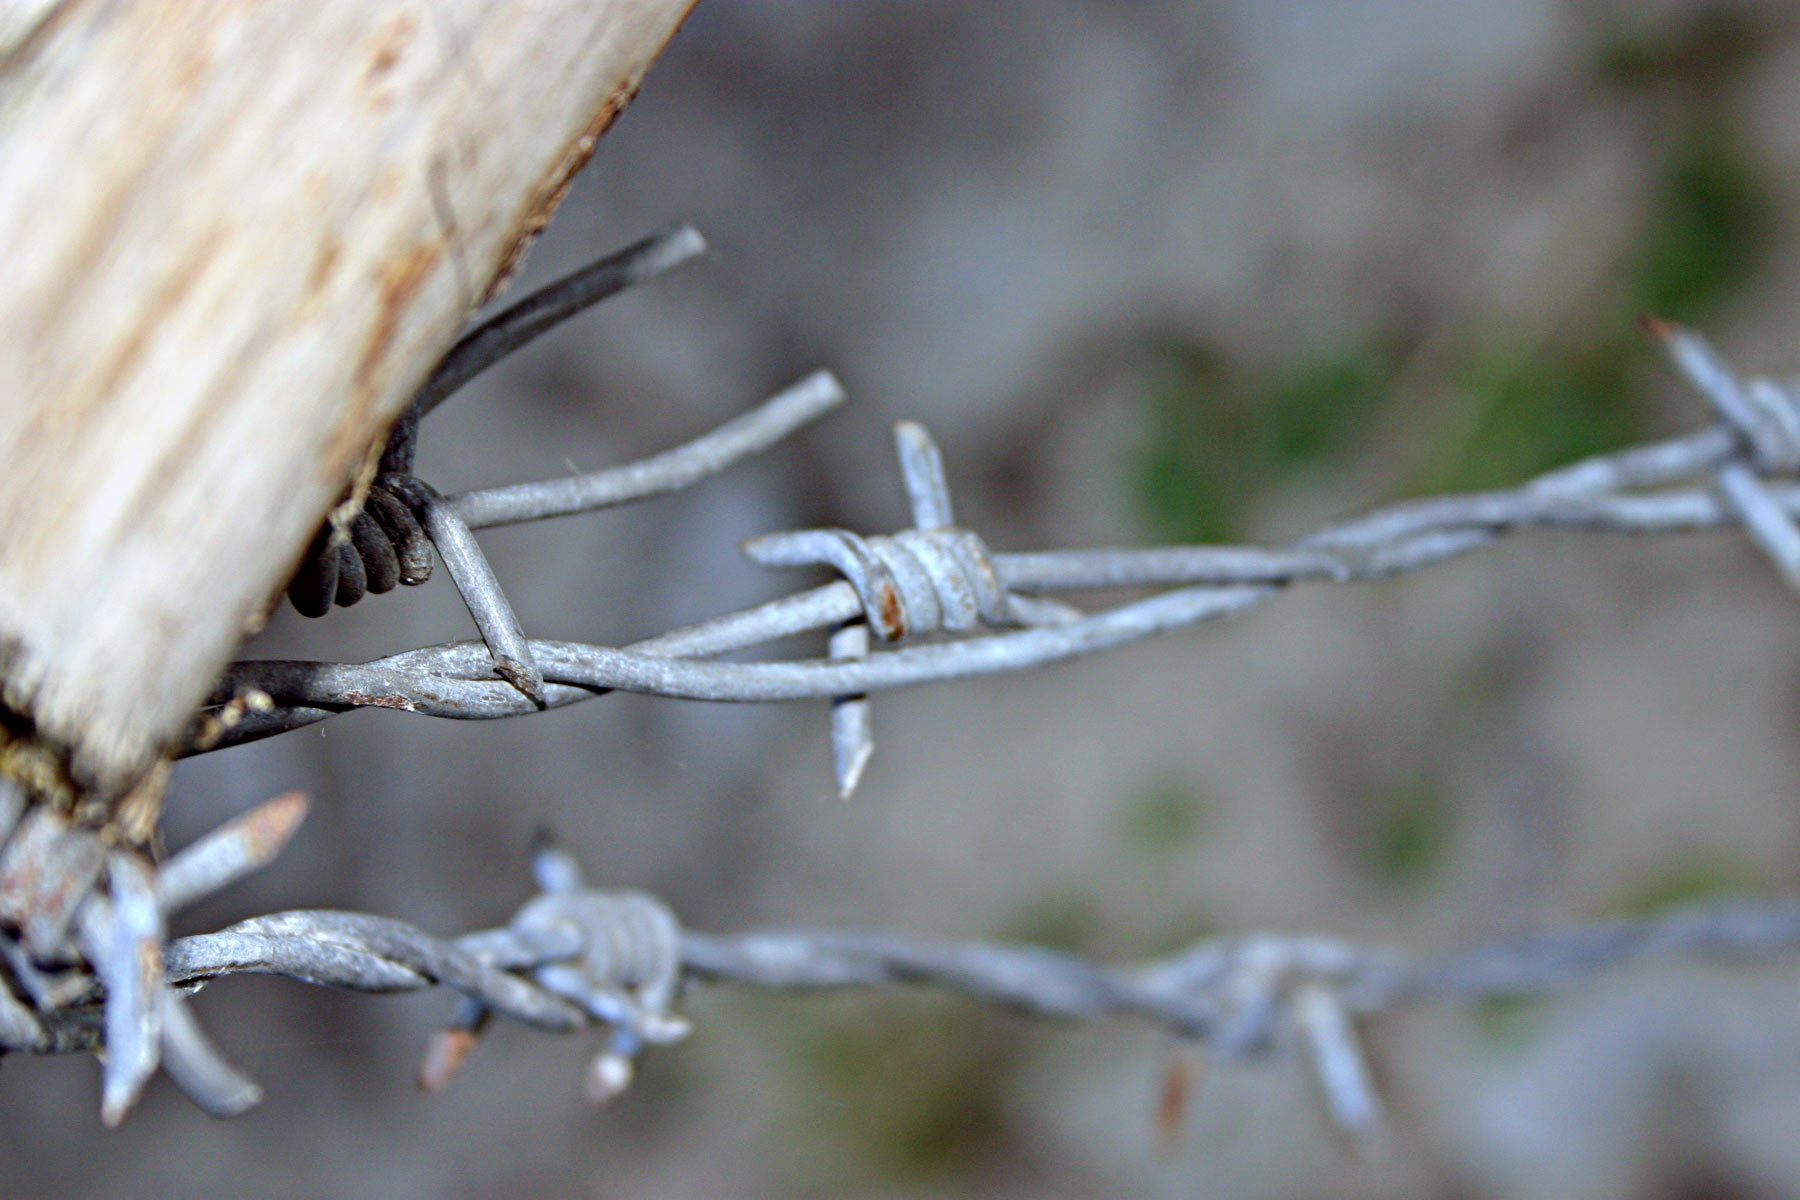 Free photo: Barbed wire closeup - Spikes, Sharp, Twisted - Free ...